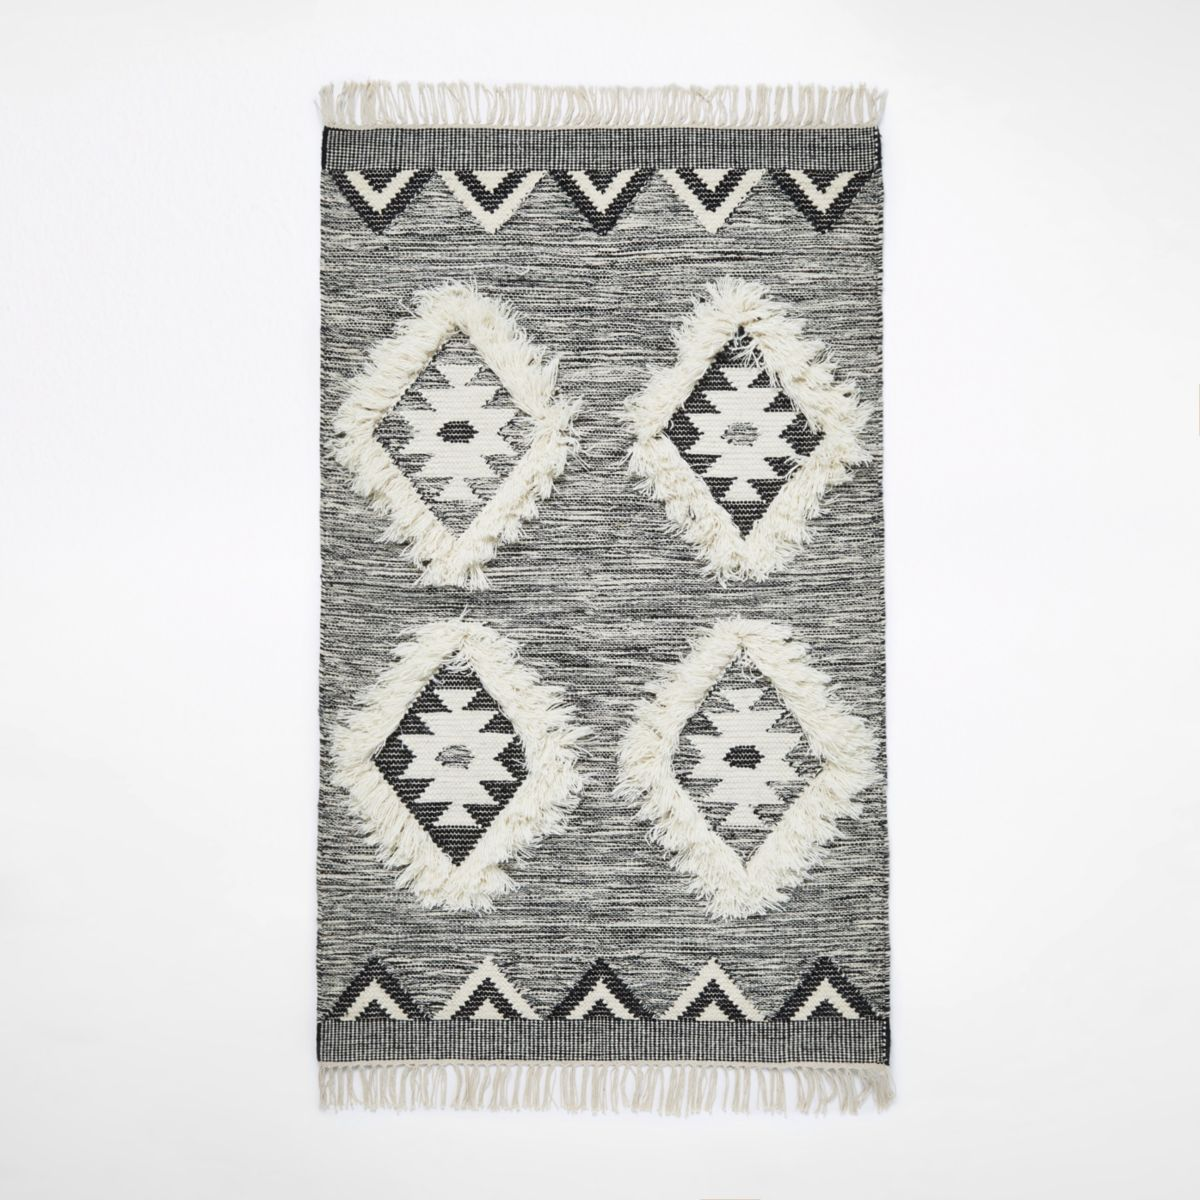 Small grey geometric diamond rug